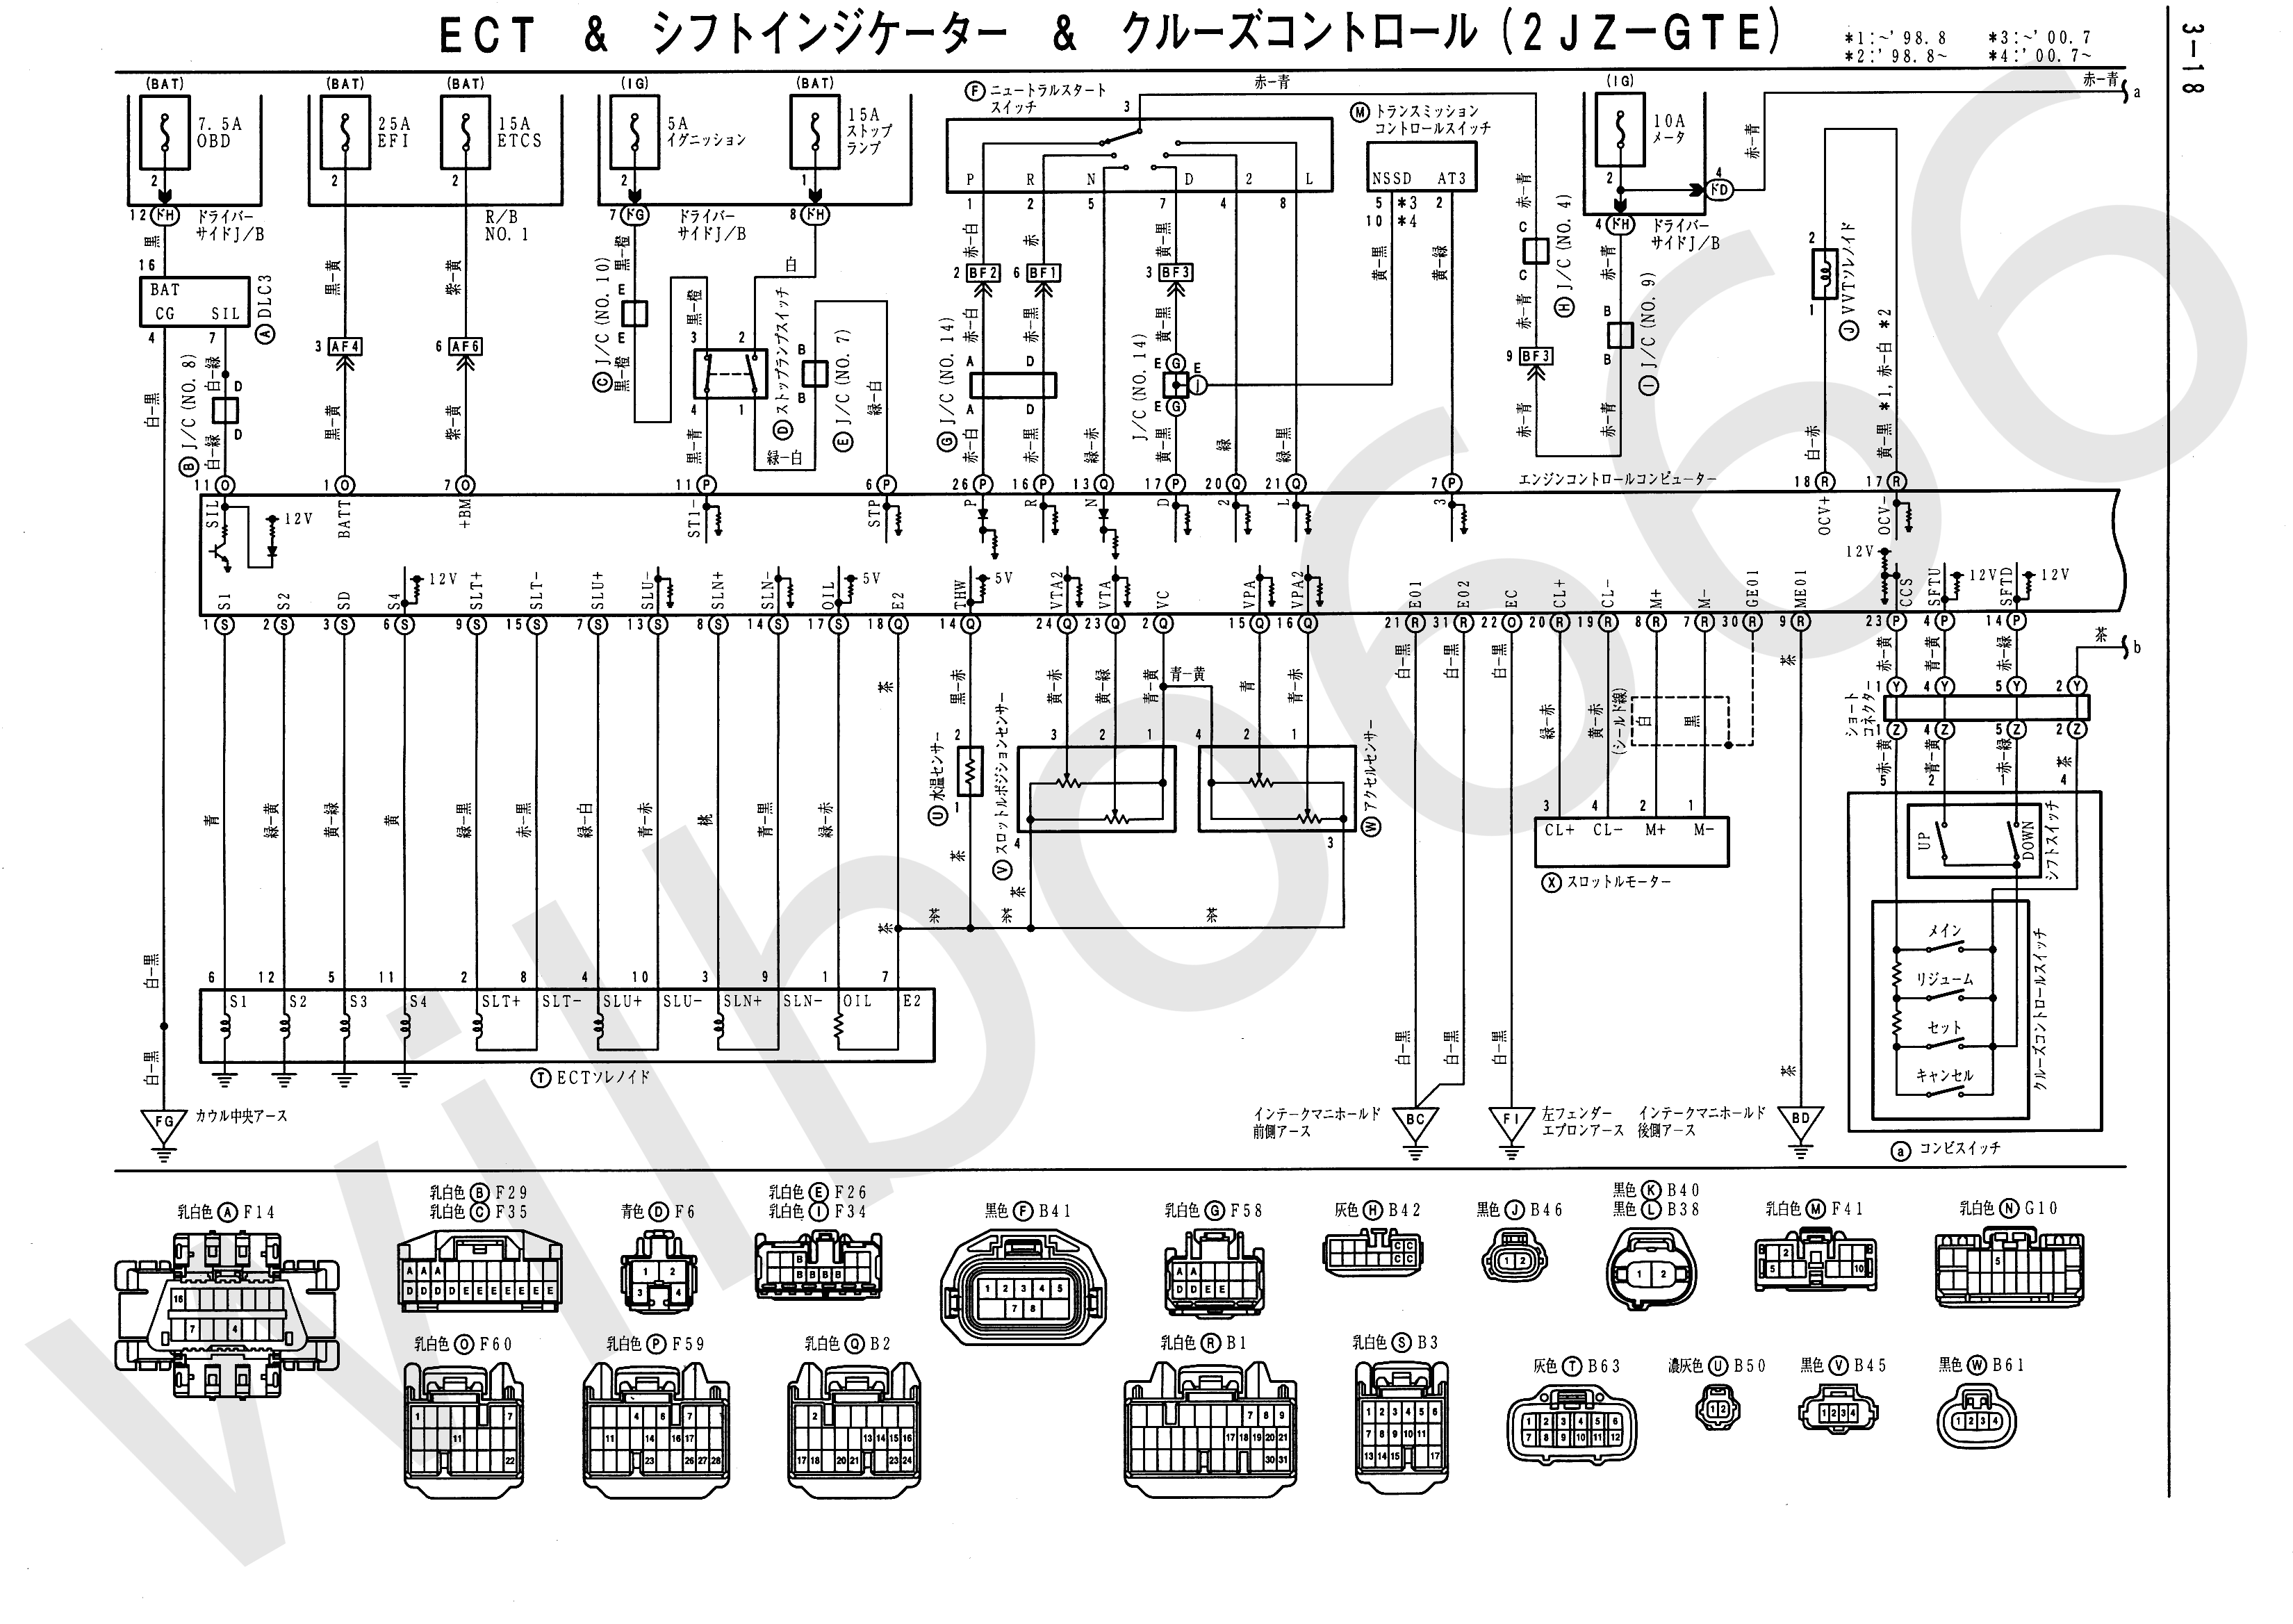 JZS161 Electrical Wiring Diagram 6748505 3 18 wilbo666 2jz gte vvti jzs161 aristo engine wiring toyota highlander ecu wiring diagram at sewacar.co